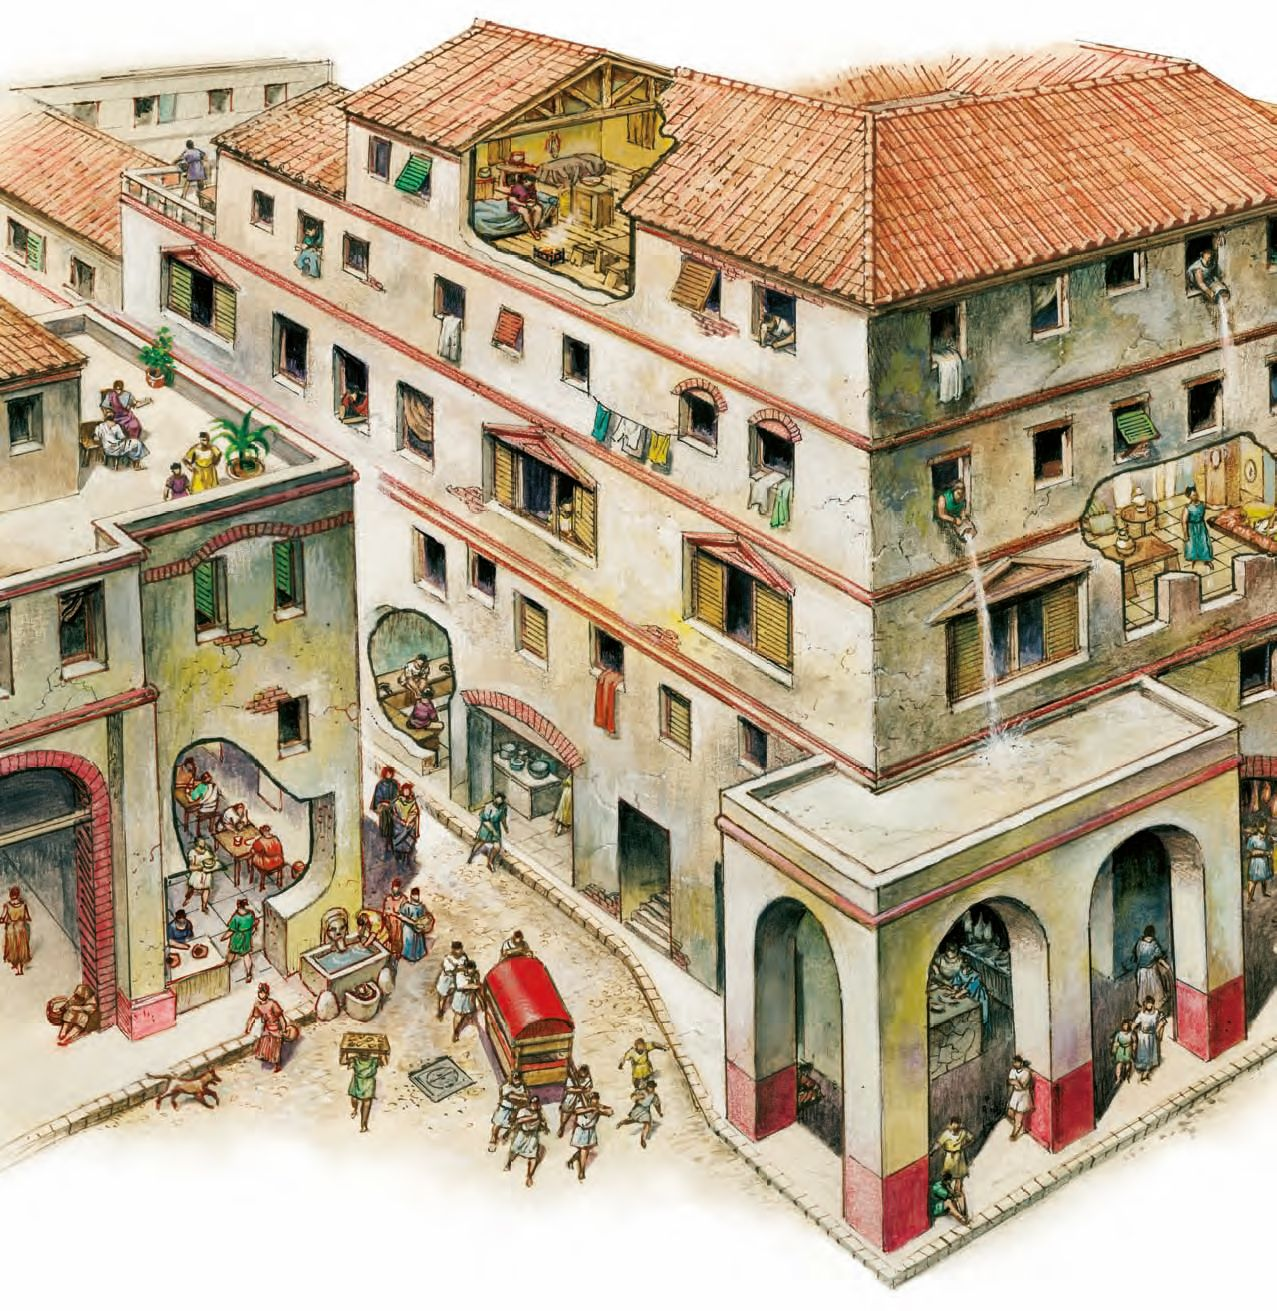 Exceptionnel In Ancient Greek And Roman Cities, Whole Blocks Of Housing Were Built Up To  Five